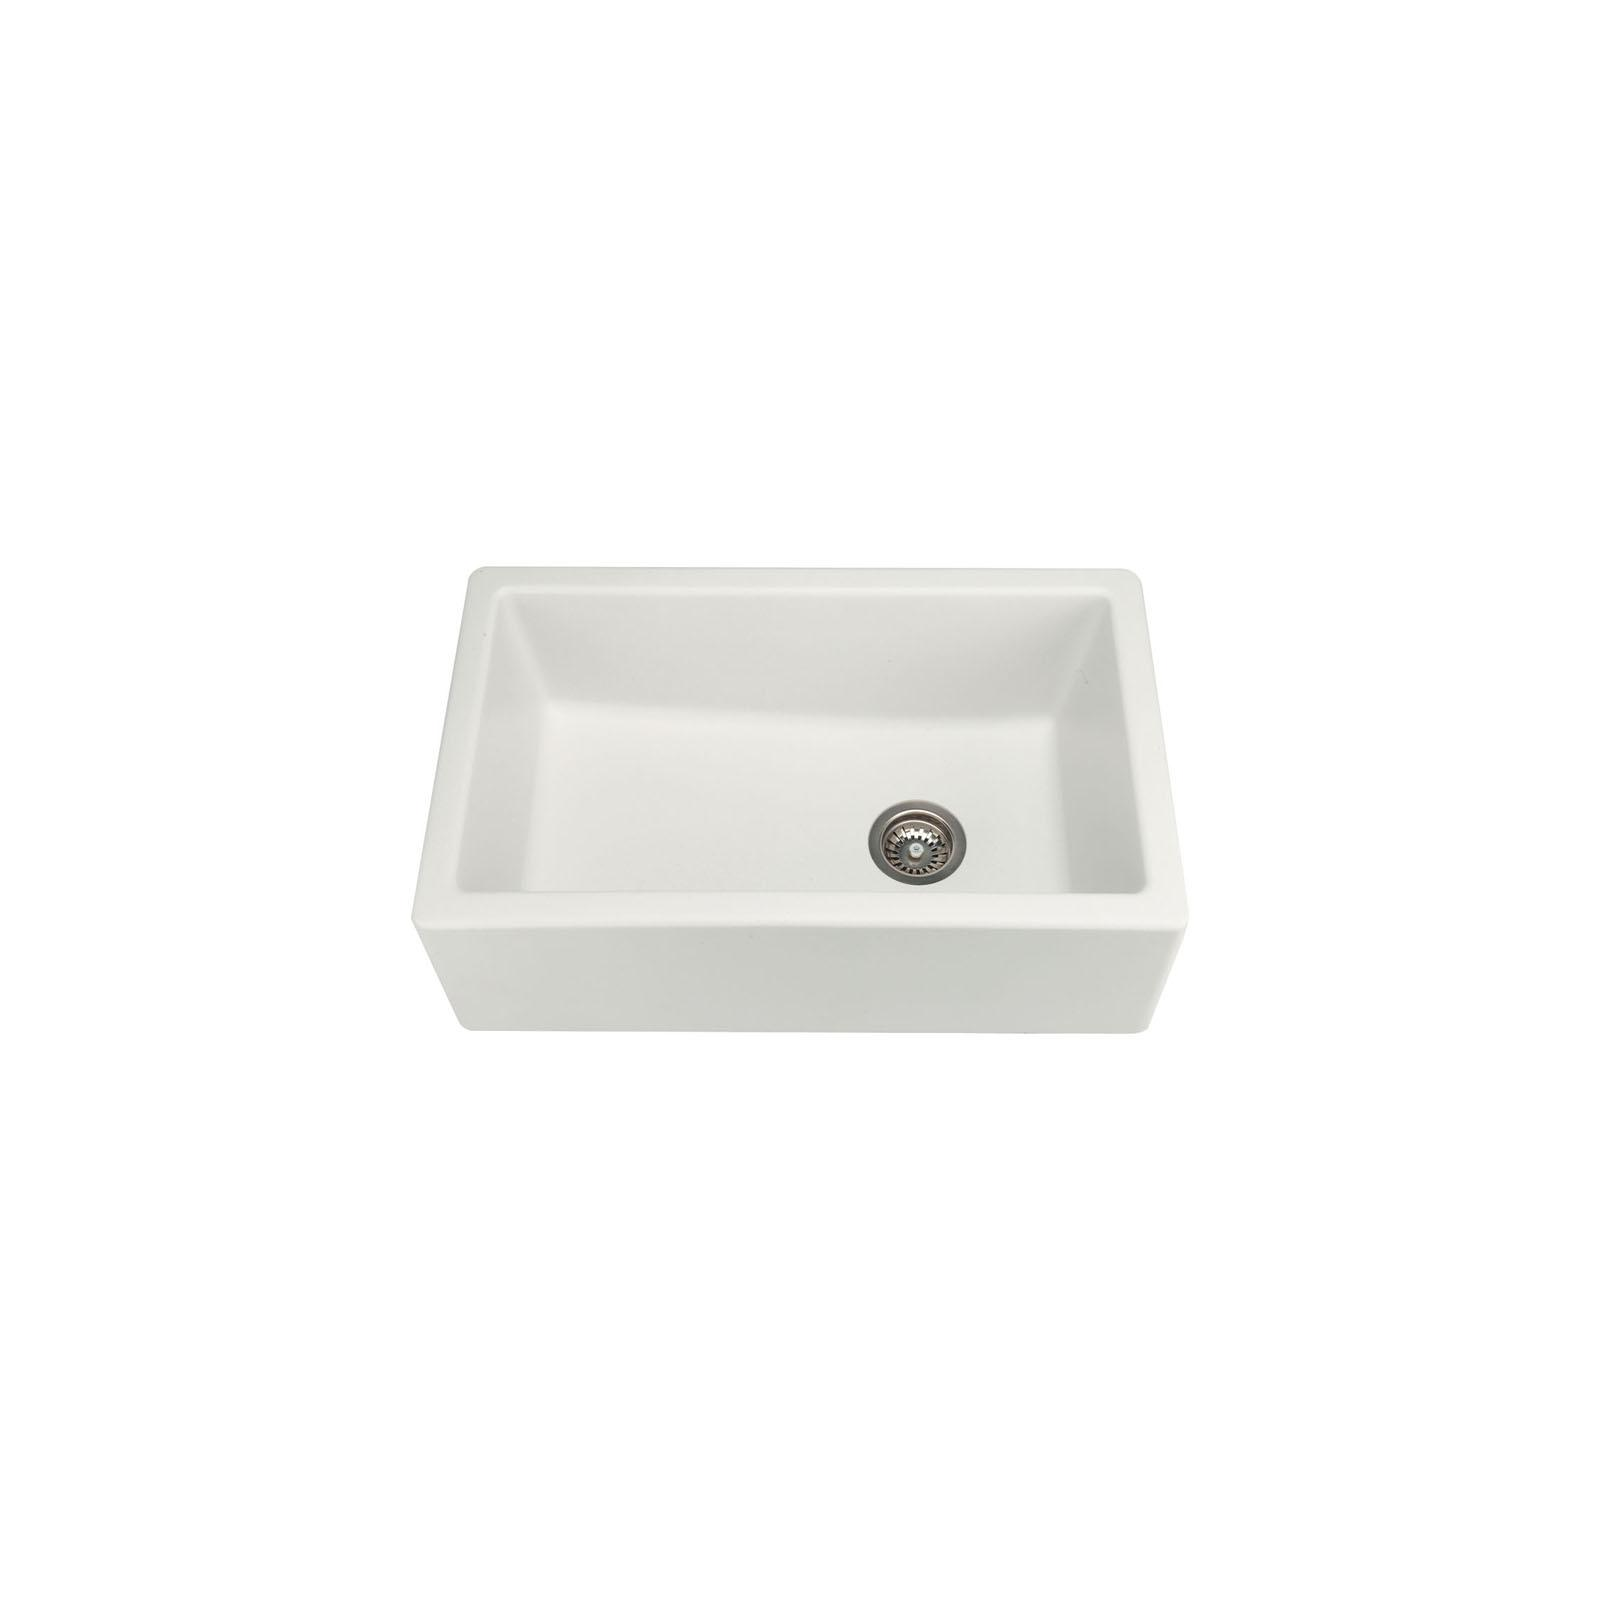 High-quality sink Philippe II granit white - one bowl